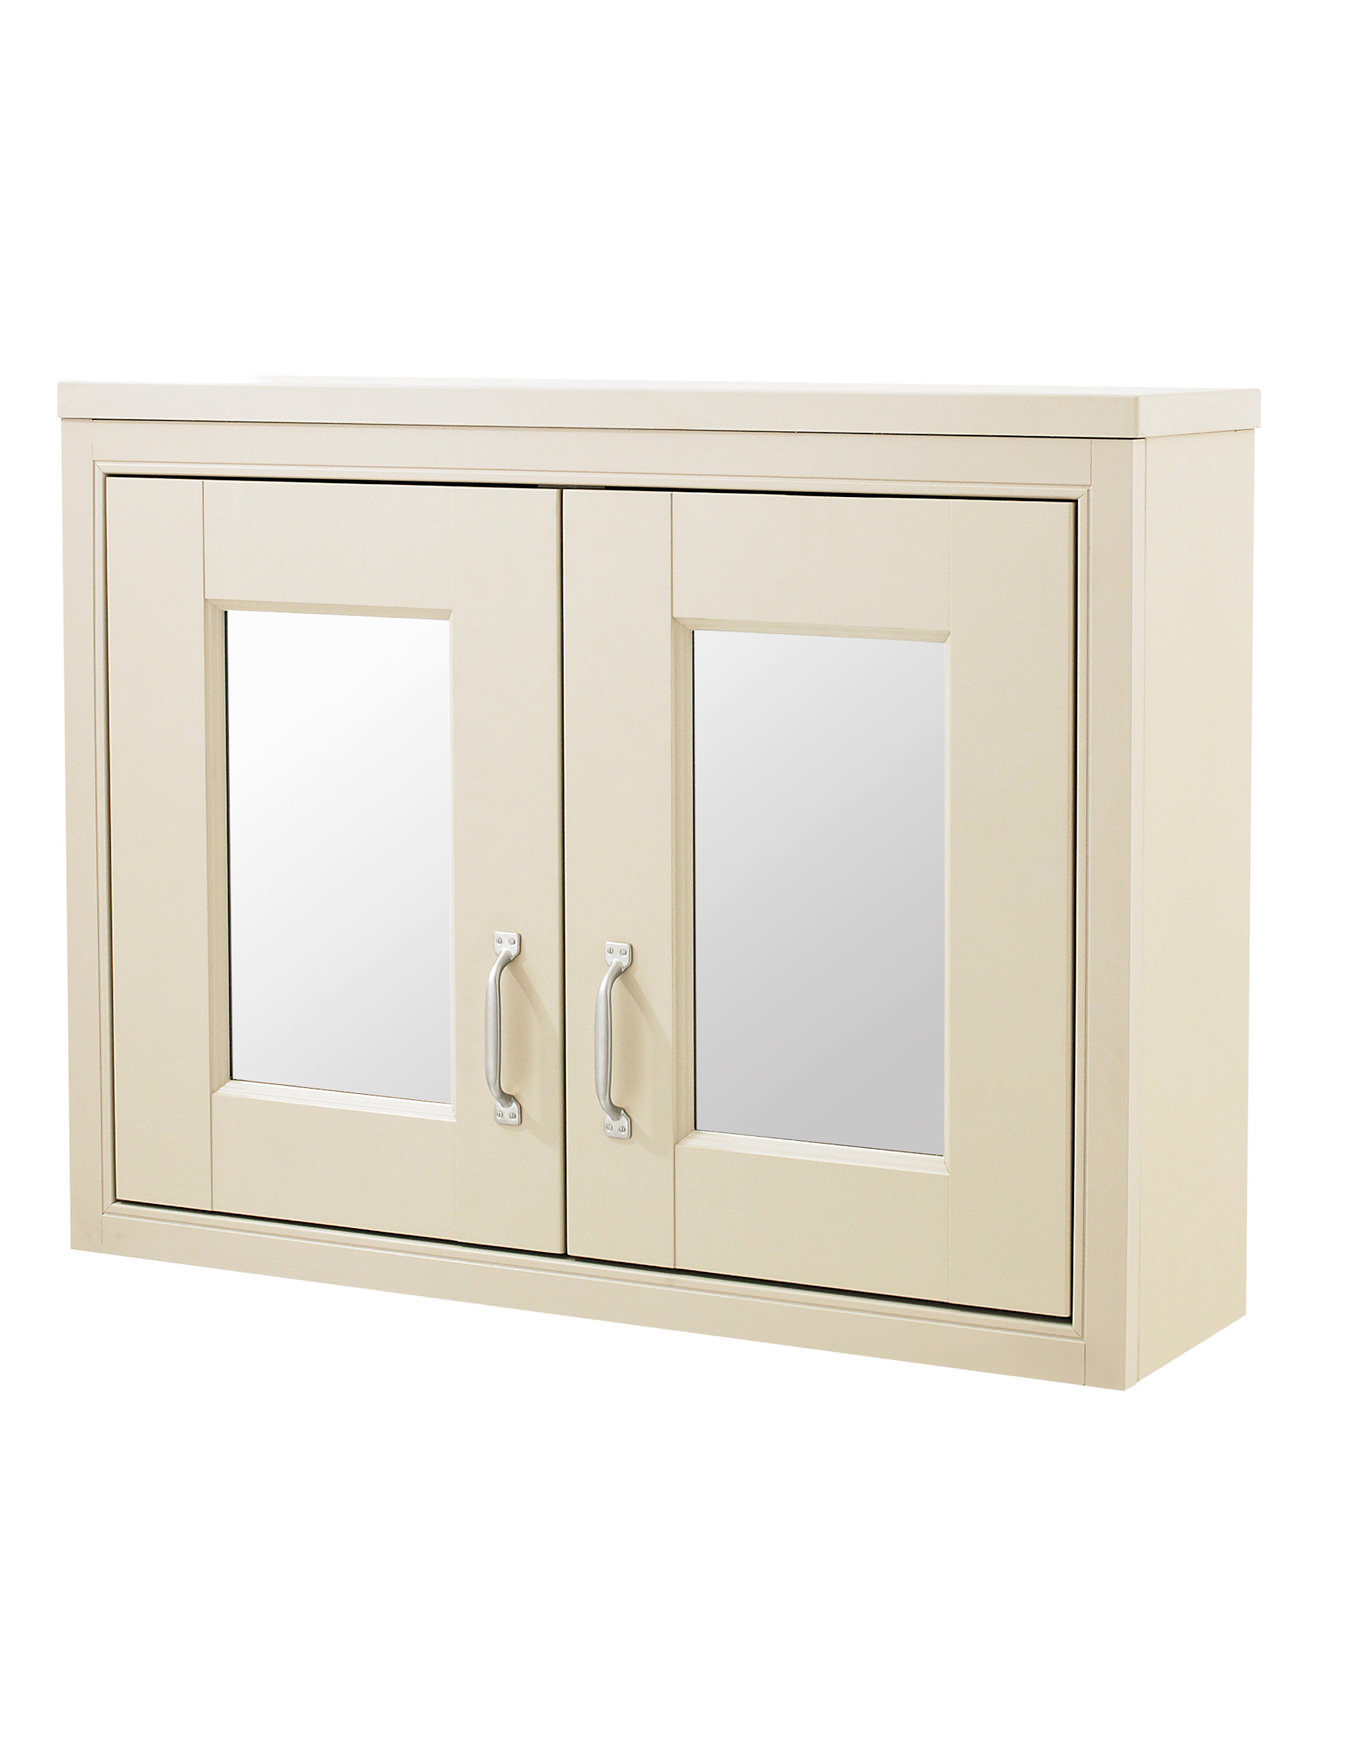 Old London Ivory 800mm Mirror Cabinet Nlv315